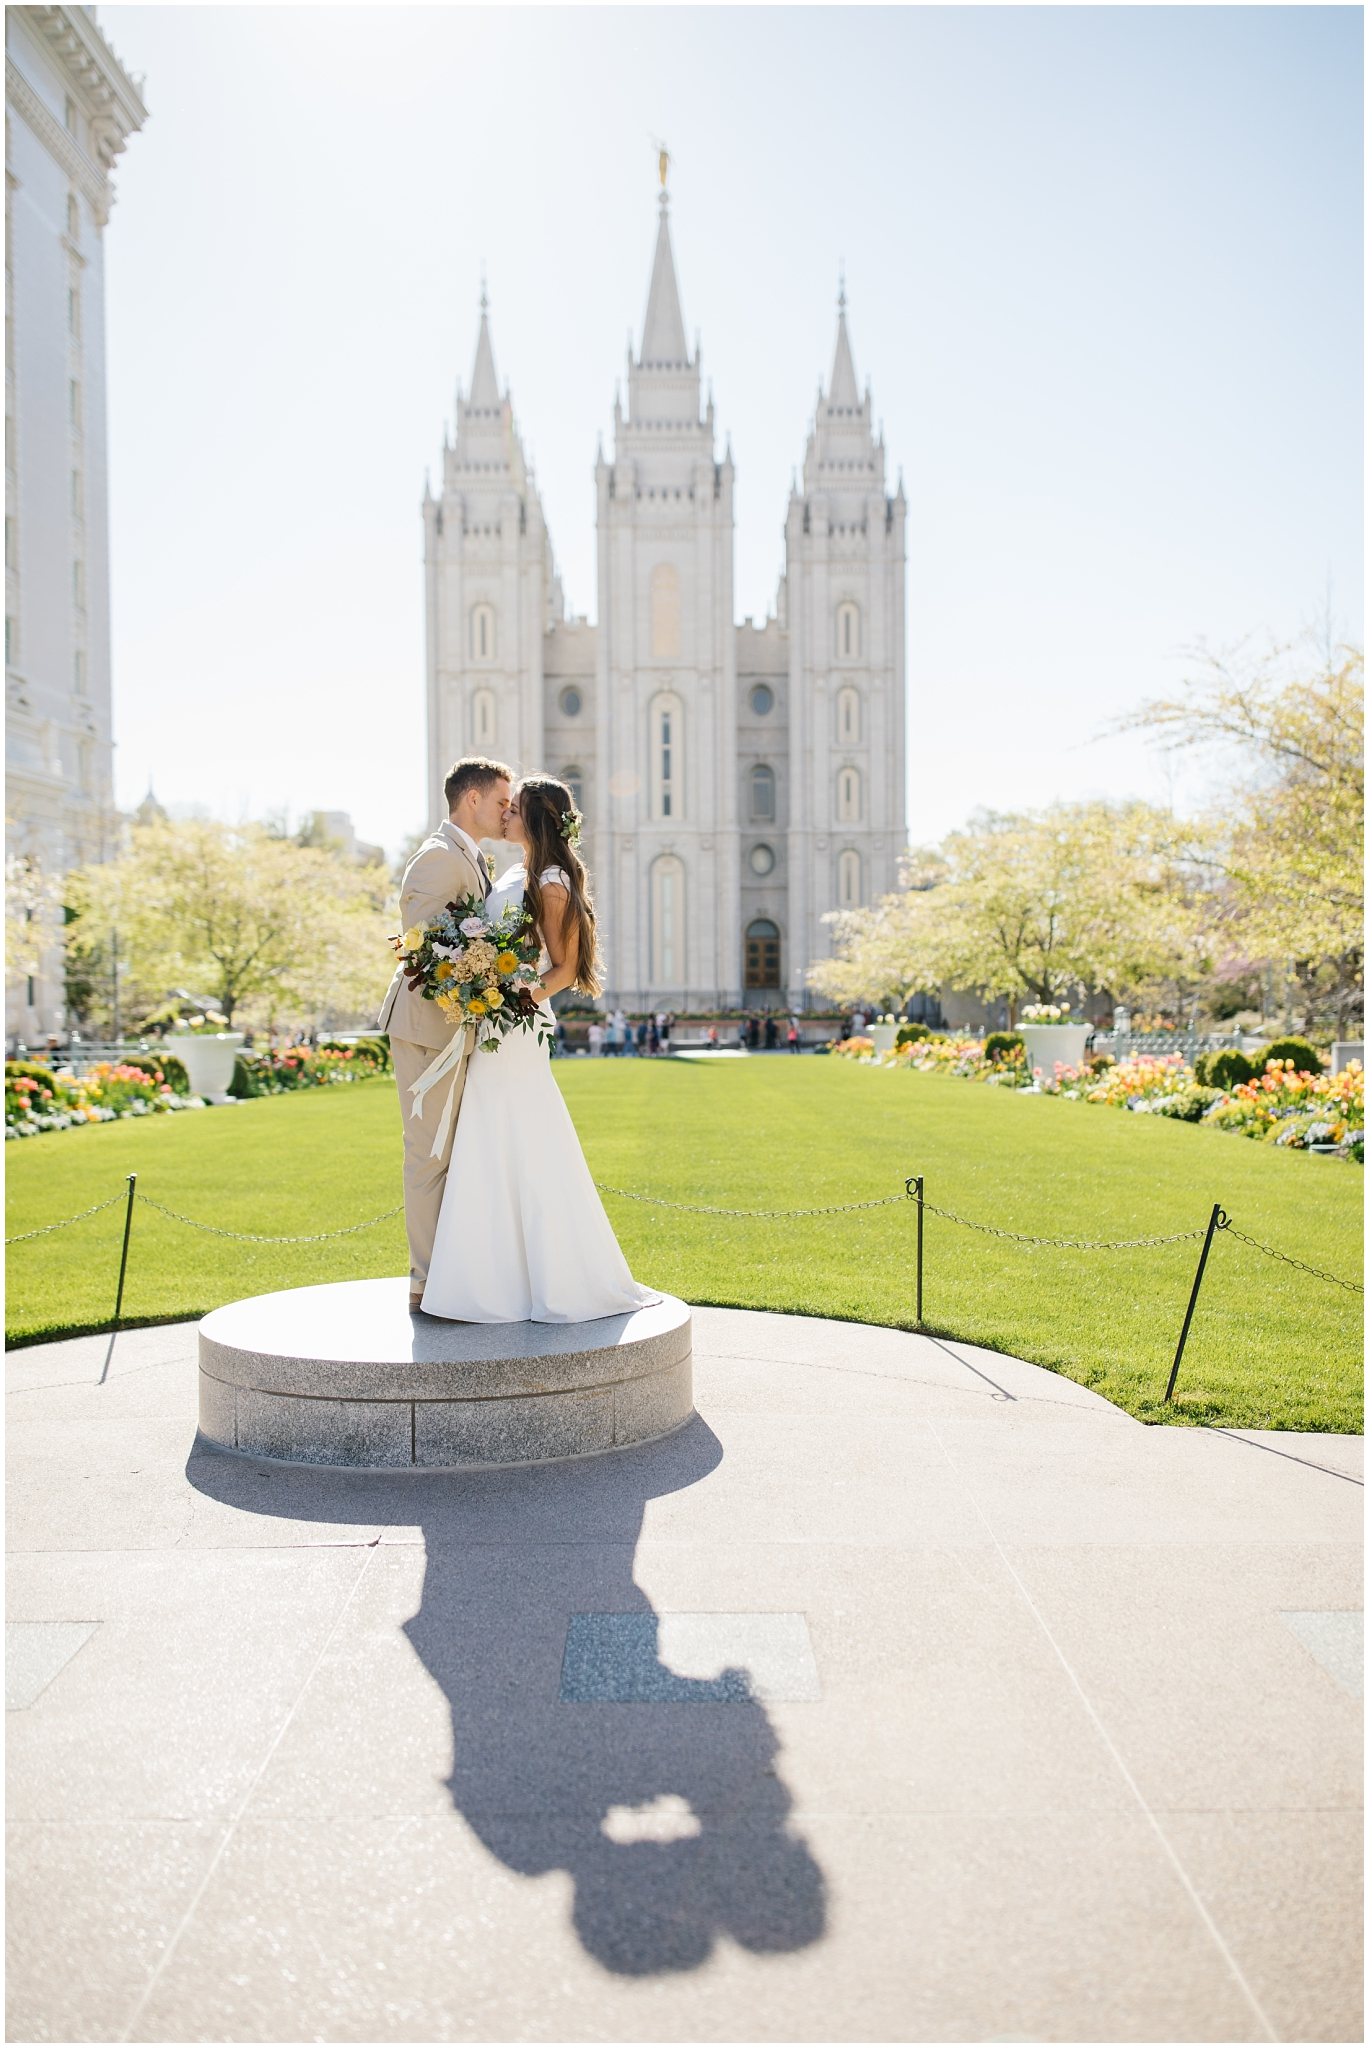 JC-Wedding-217_Lizzie-B-Imagery-Utah-Wedding-Photographer-Park-City-Salt-Lake-City-Temple-Joseph-Smith-Memorial-Building-Empire-Room.jpg